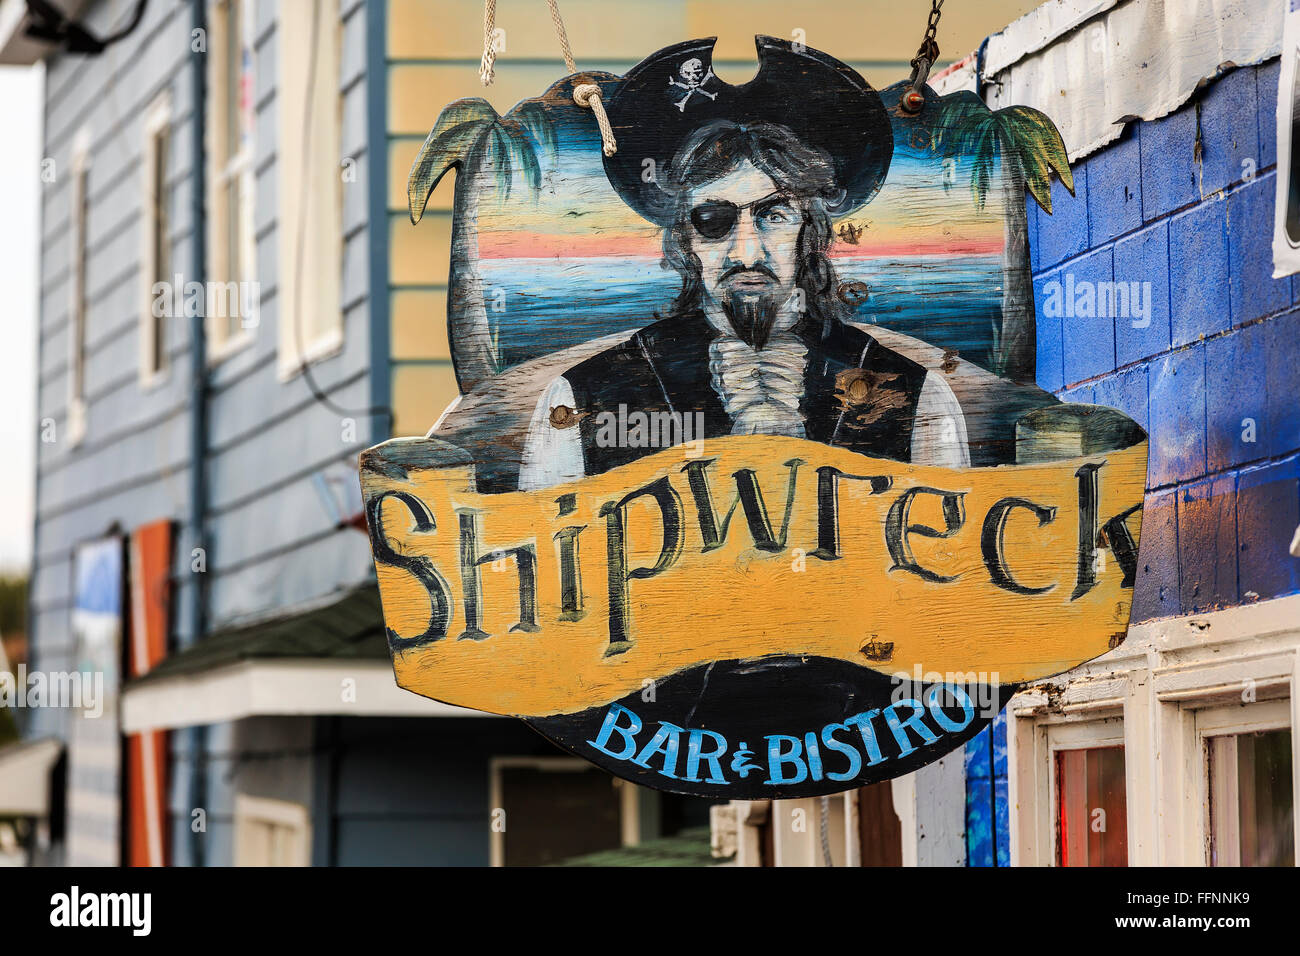 Bar and Bistro sign, Tobermory, Ontario, Canada. - Stock Image